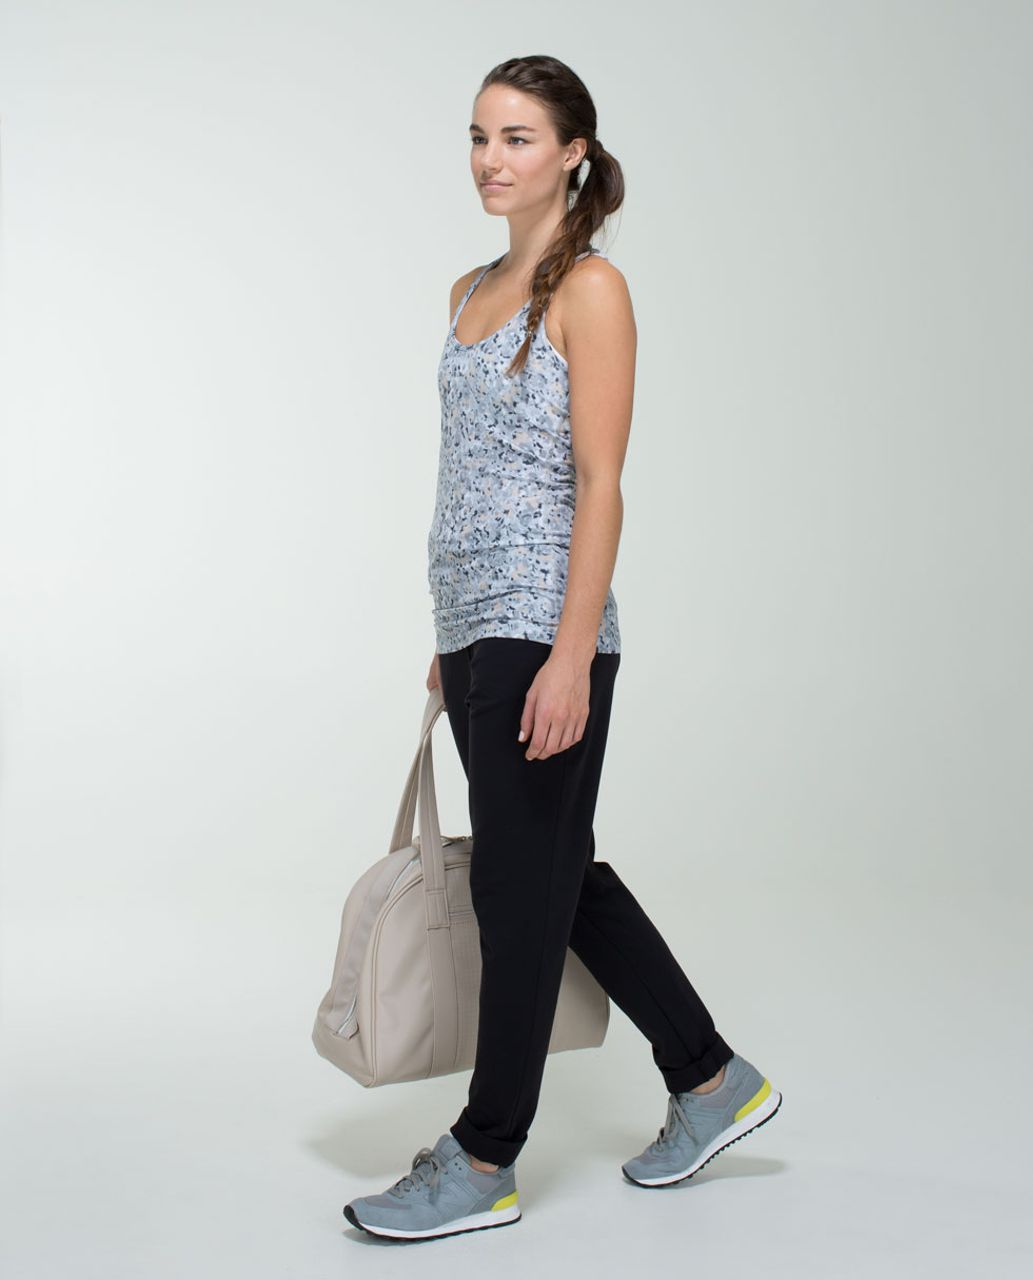 Lululemon Cool Racerback - Not So Petite Fleur Silver Spoon